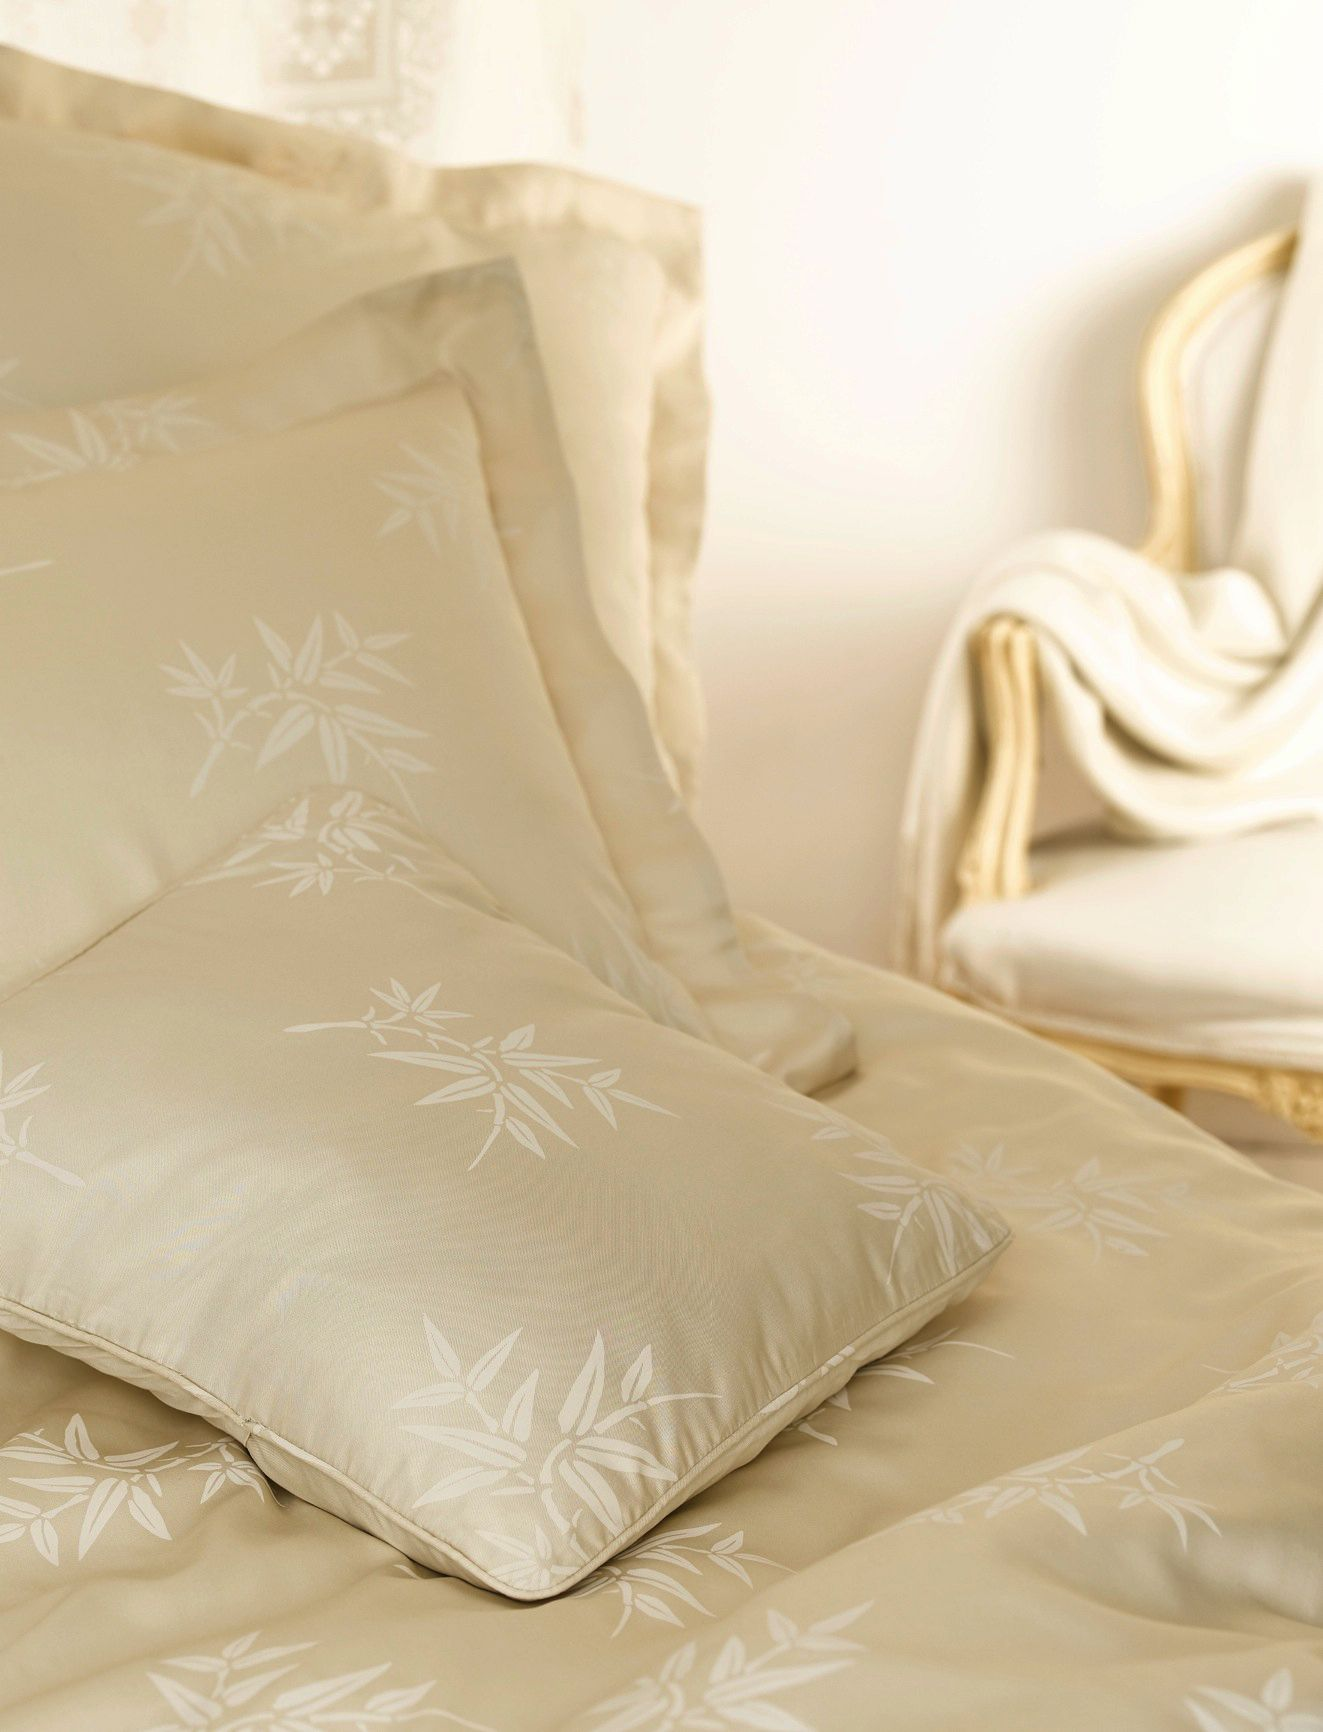 100 Bamboo Bed linen in Almond Bamboo sheets bedding